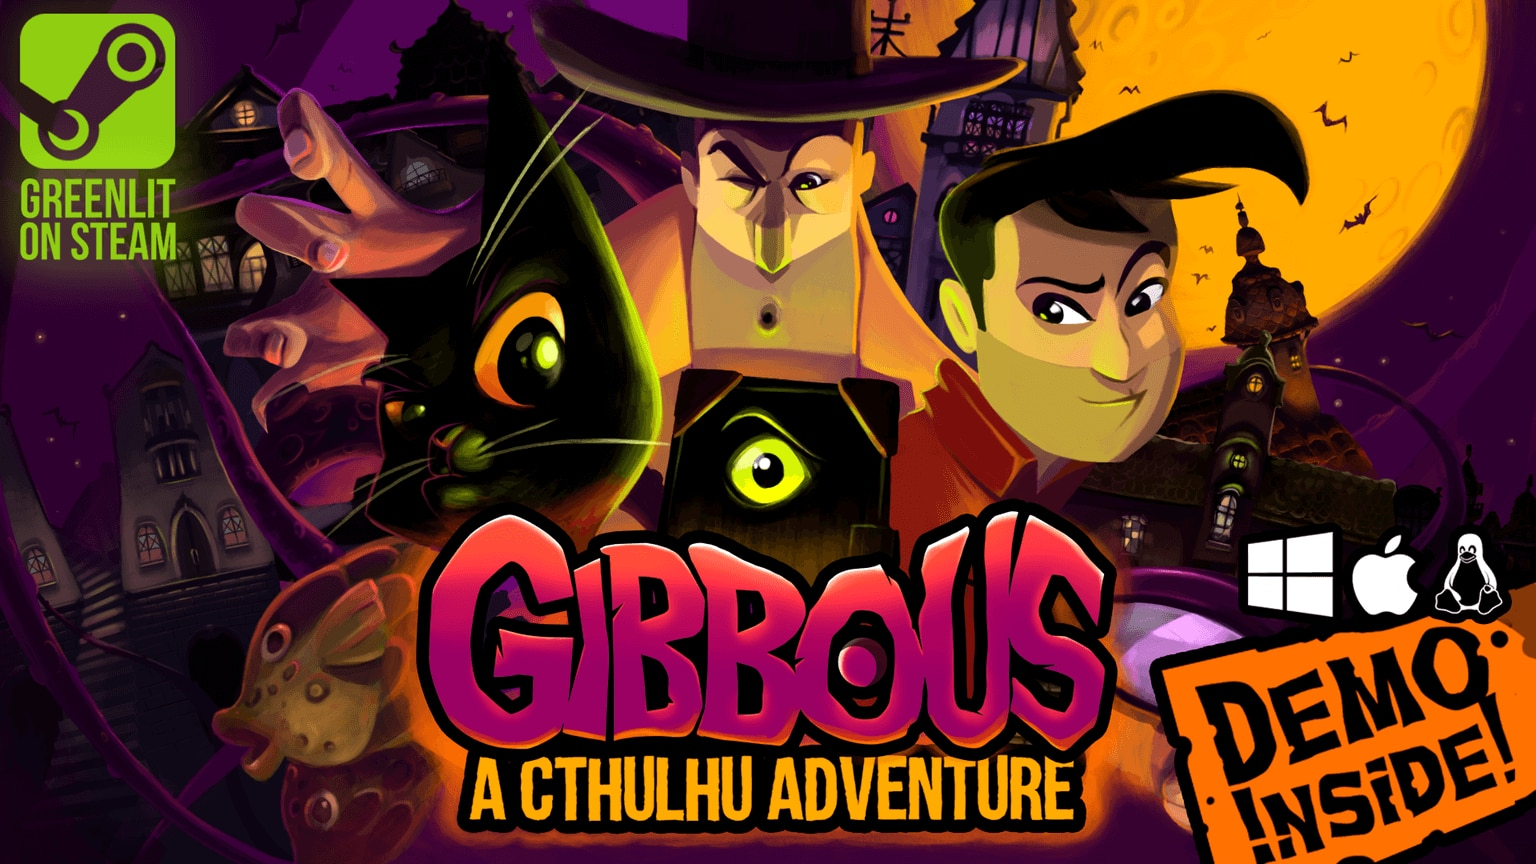 gibbous a lovecraft adventure1 1 - New Game Gibbous - A Cthulhu Adventure Explores Lovecraft's Funny Side